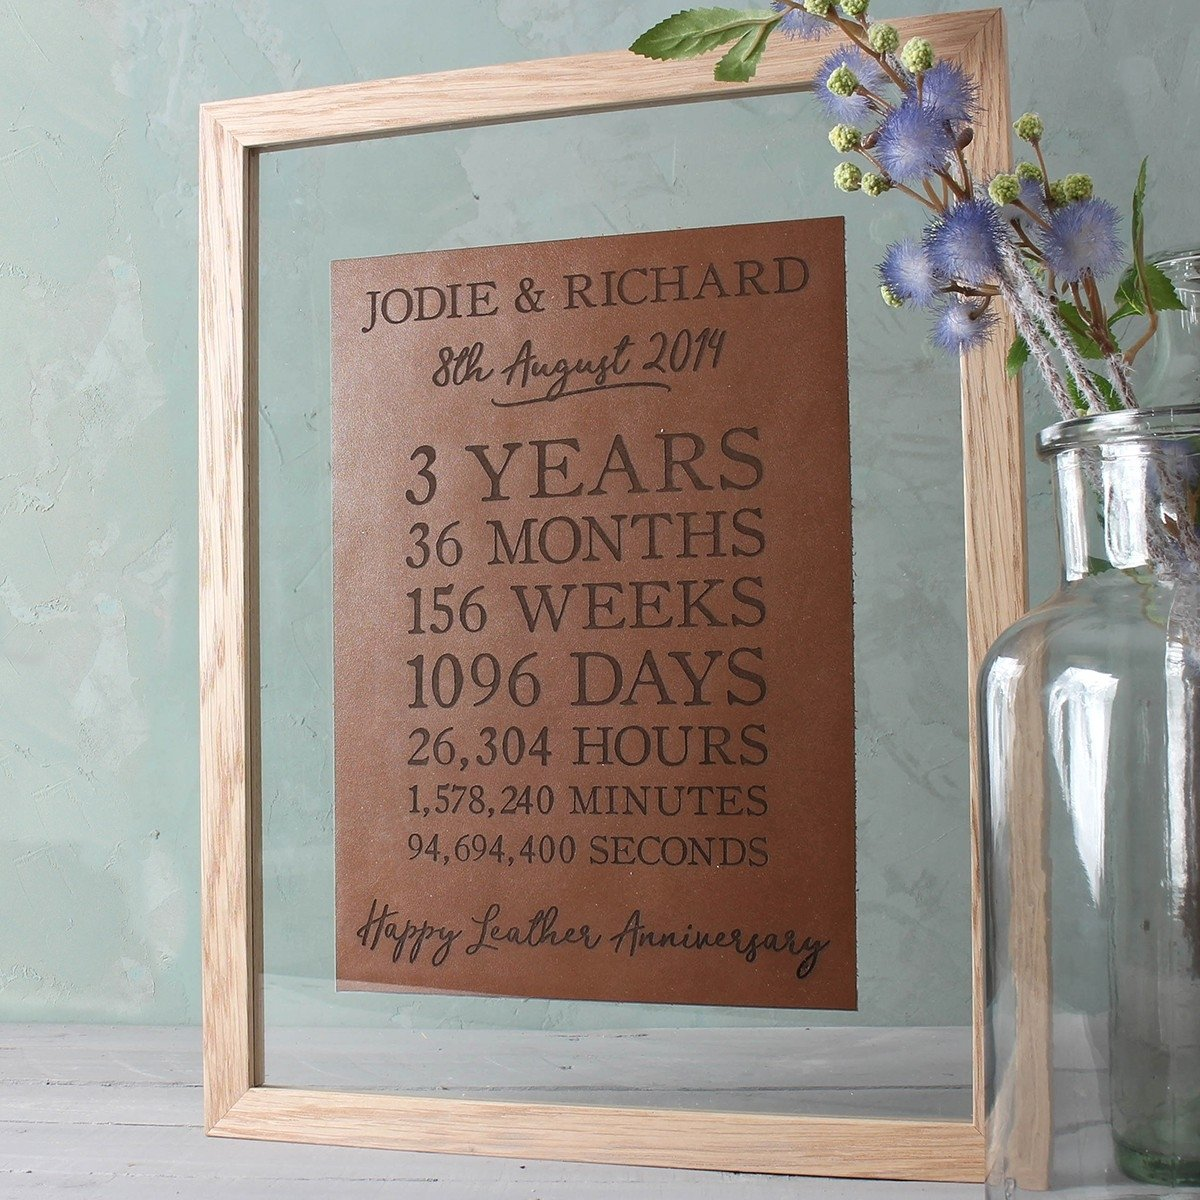 3rd year wedding anniversary ideas for him uk marriage gift husband